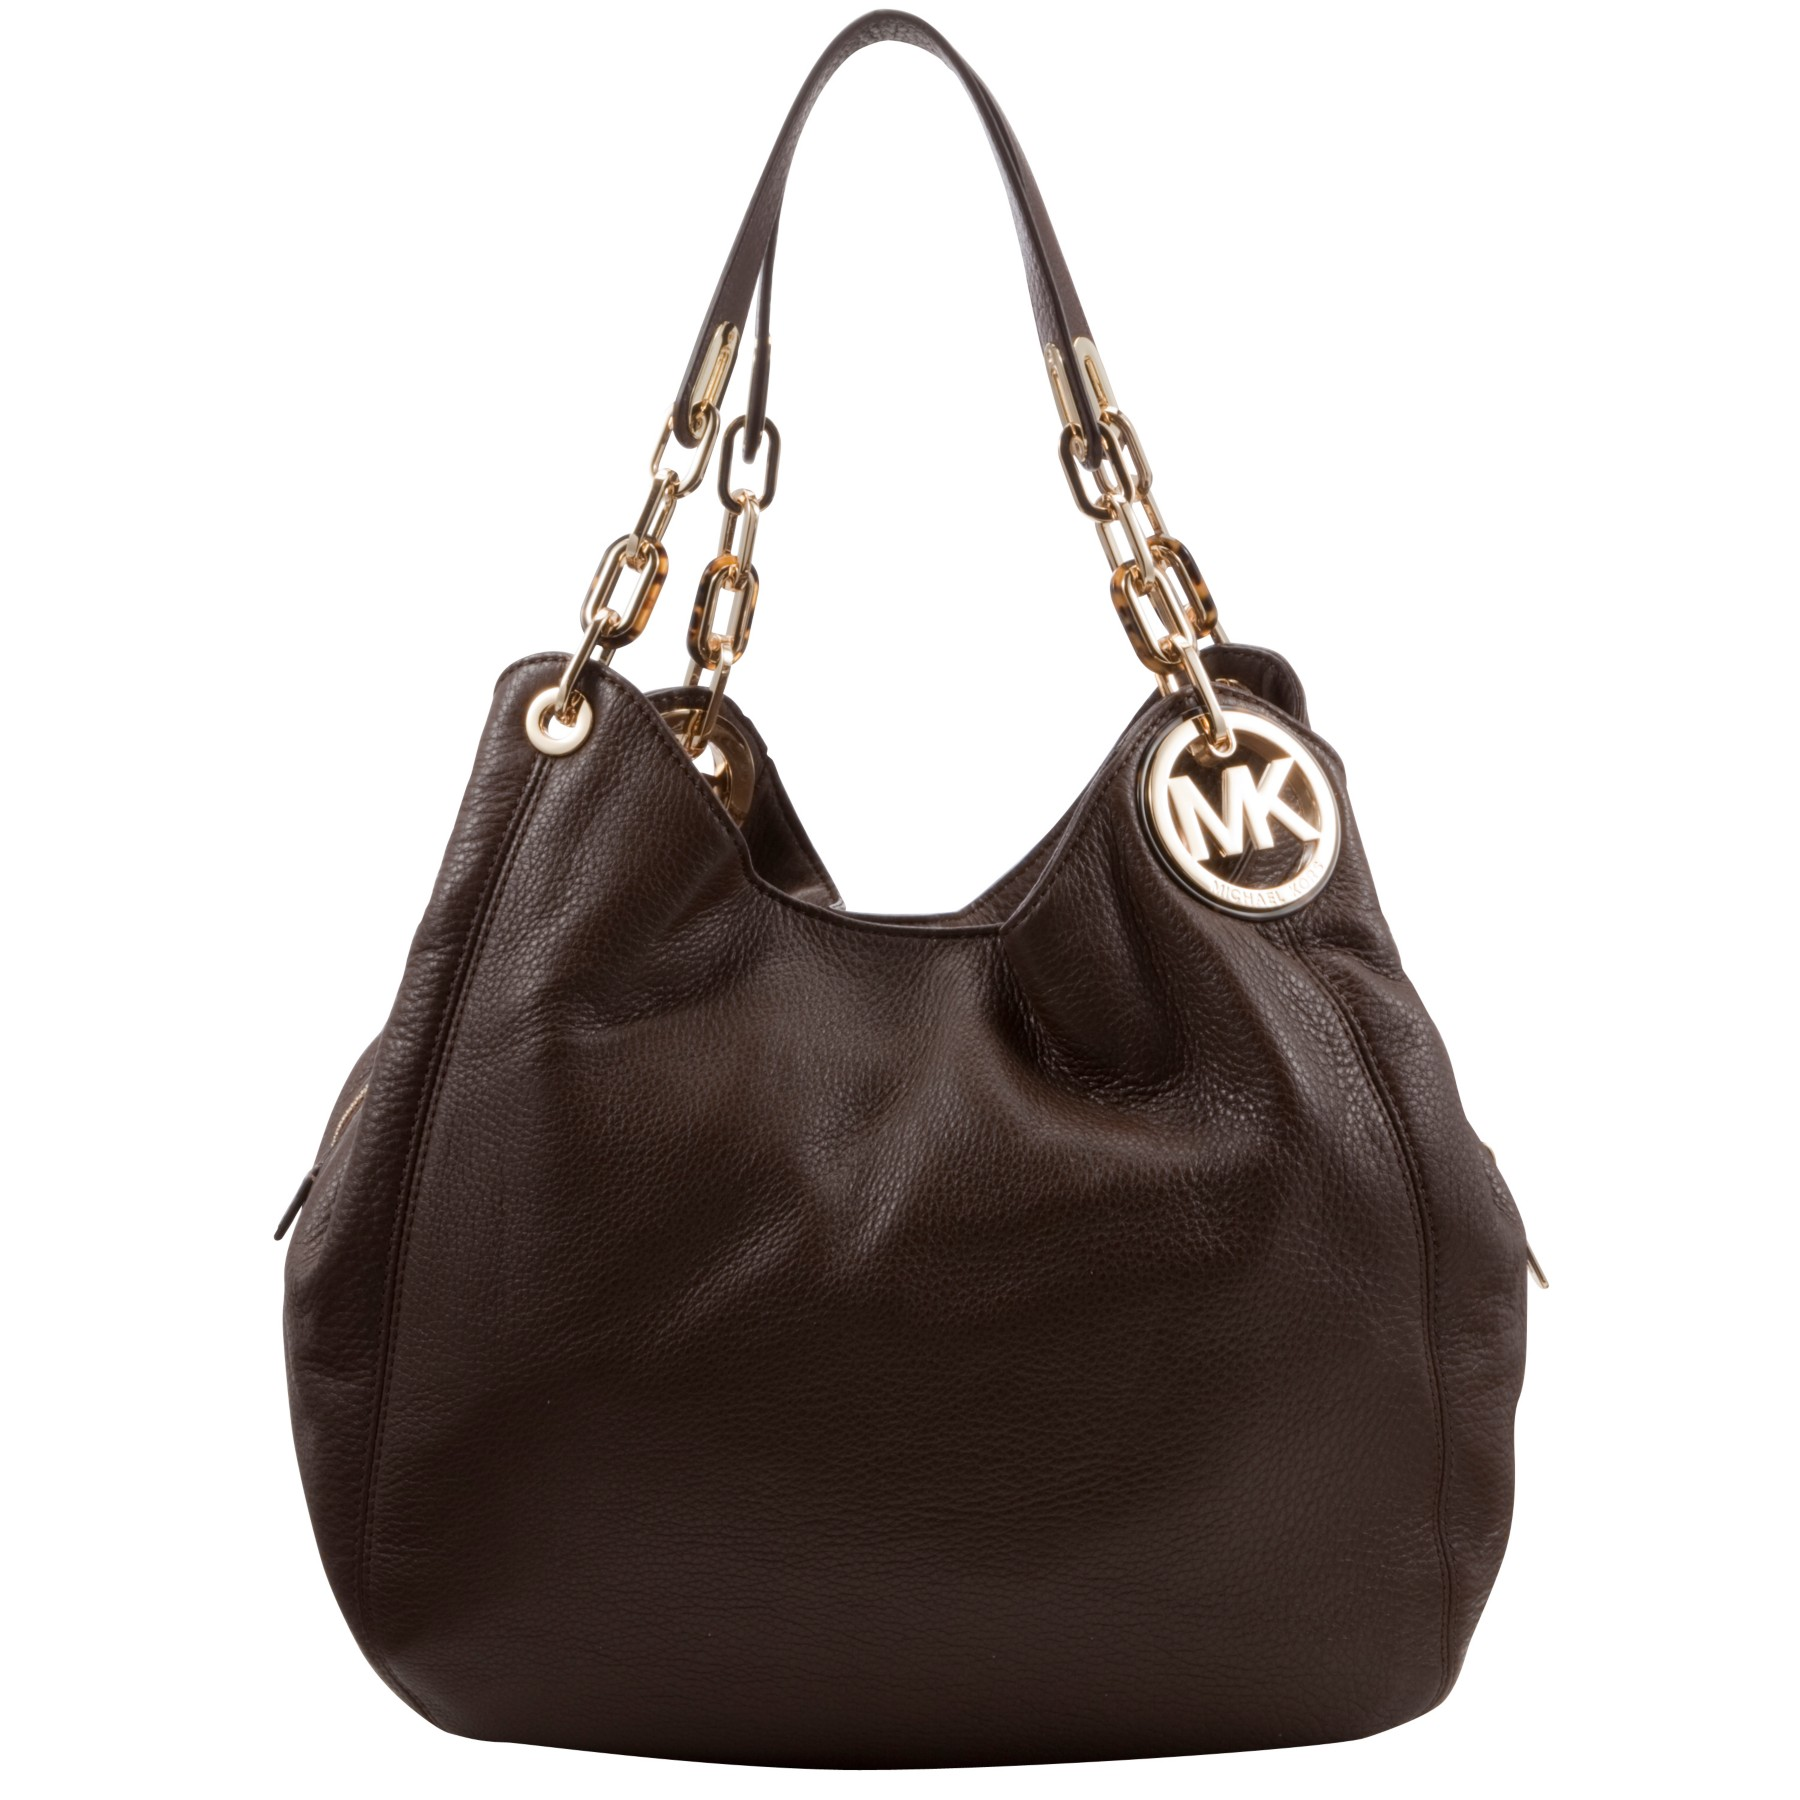 michael kors tasche fulton details about michael kors tasche handtas che bag fulton chain md. Black Bedroom Furniture Sets. Home Design Ideas